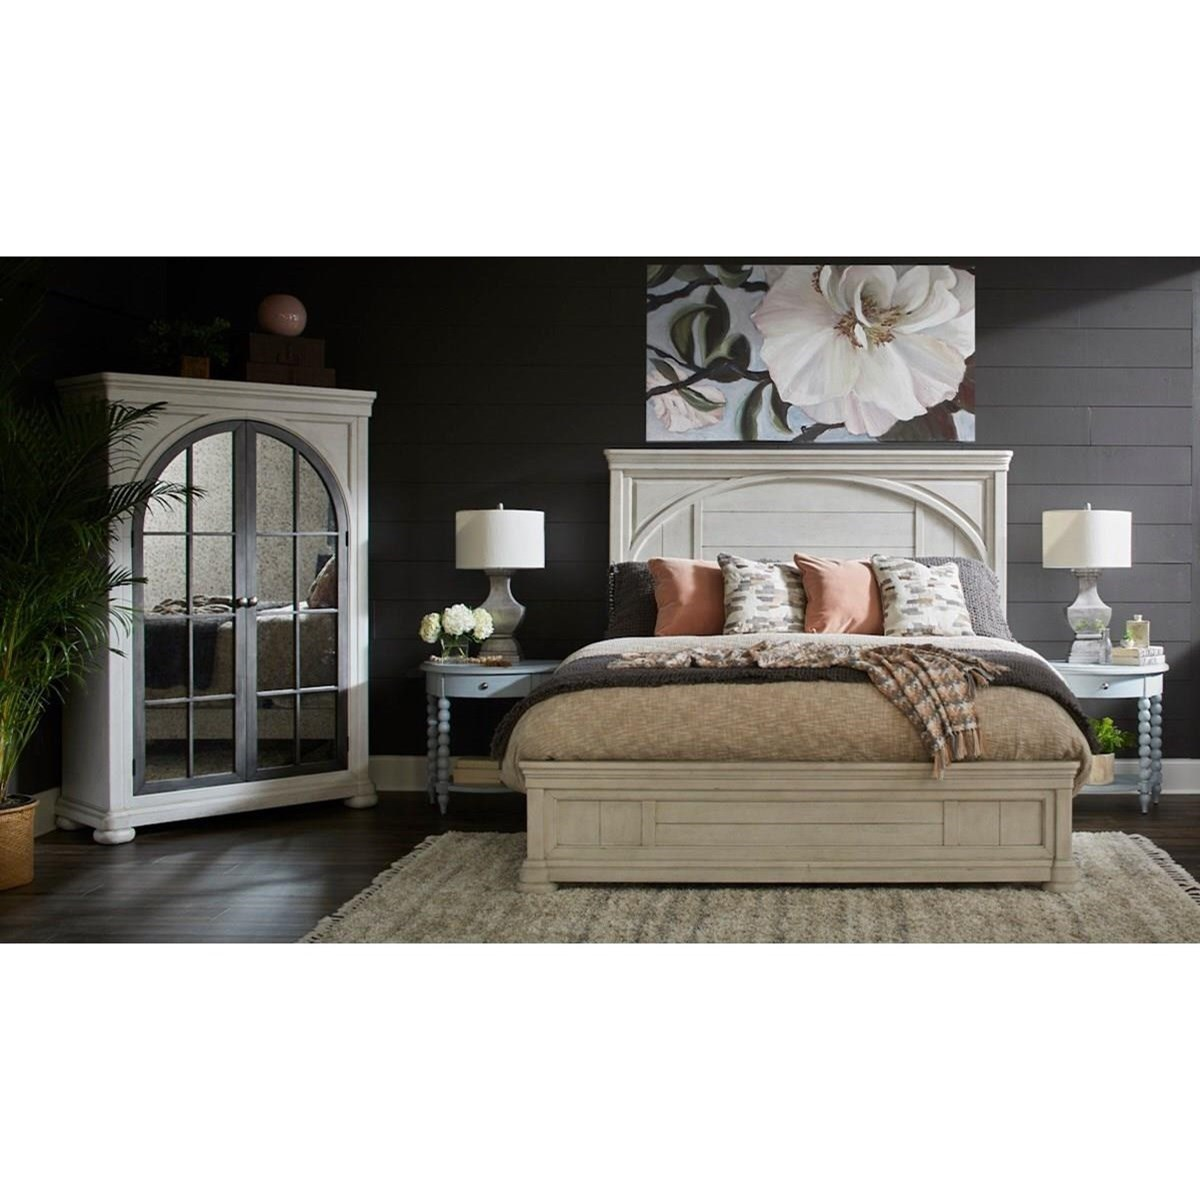 Trisha Yearwood Home Collection By Klaussner Nashville 749